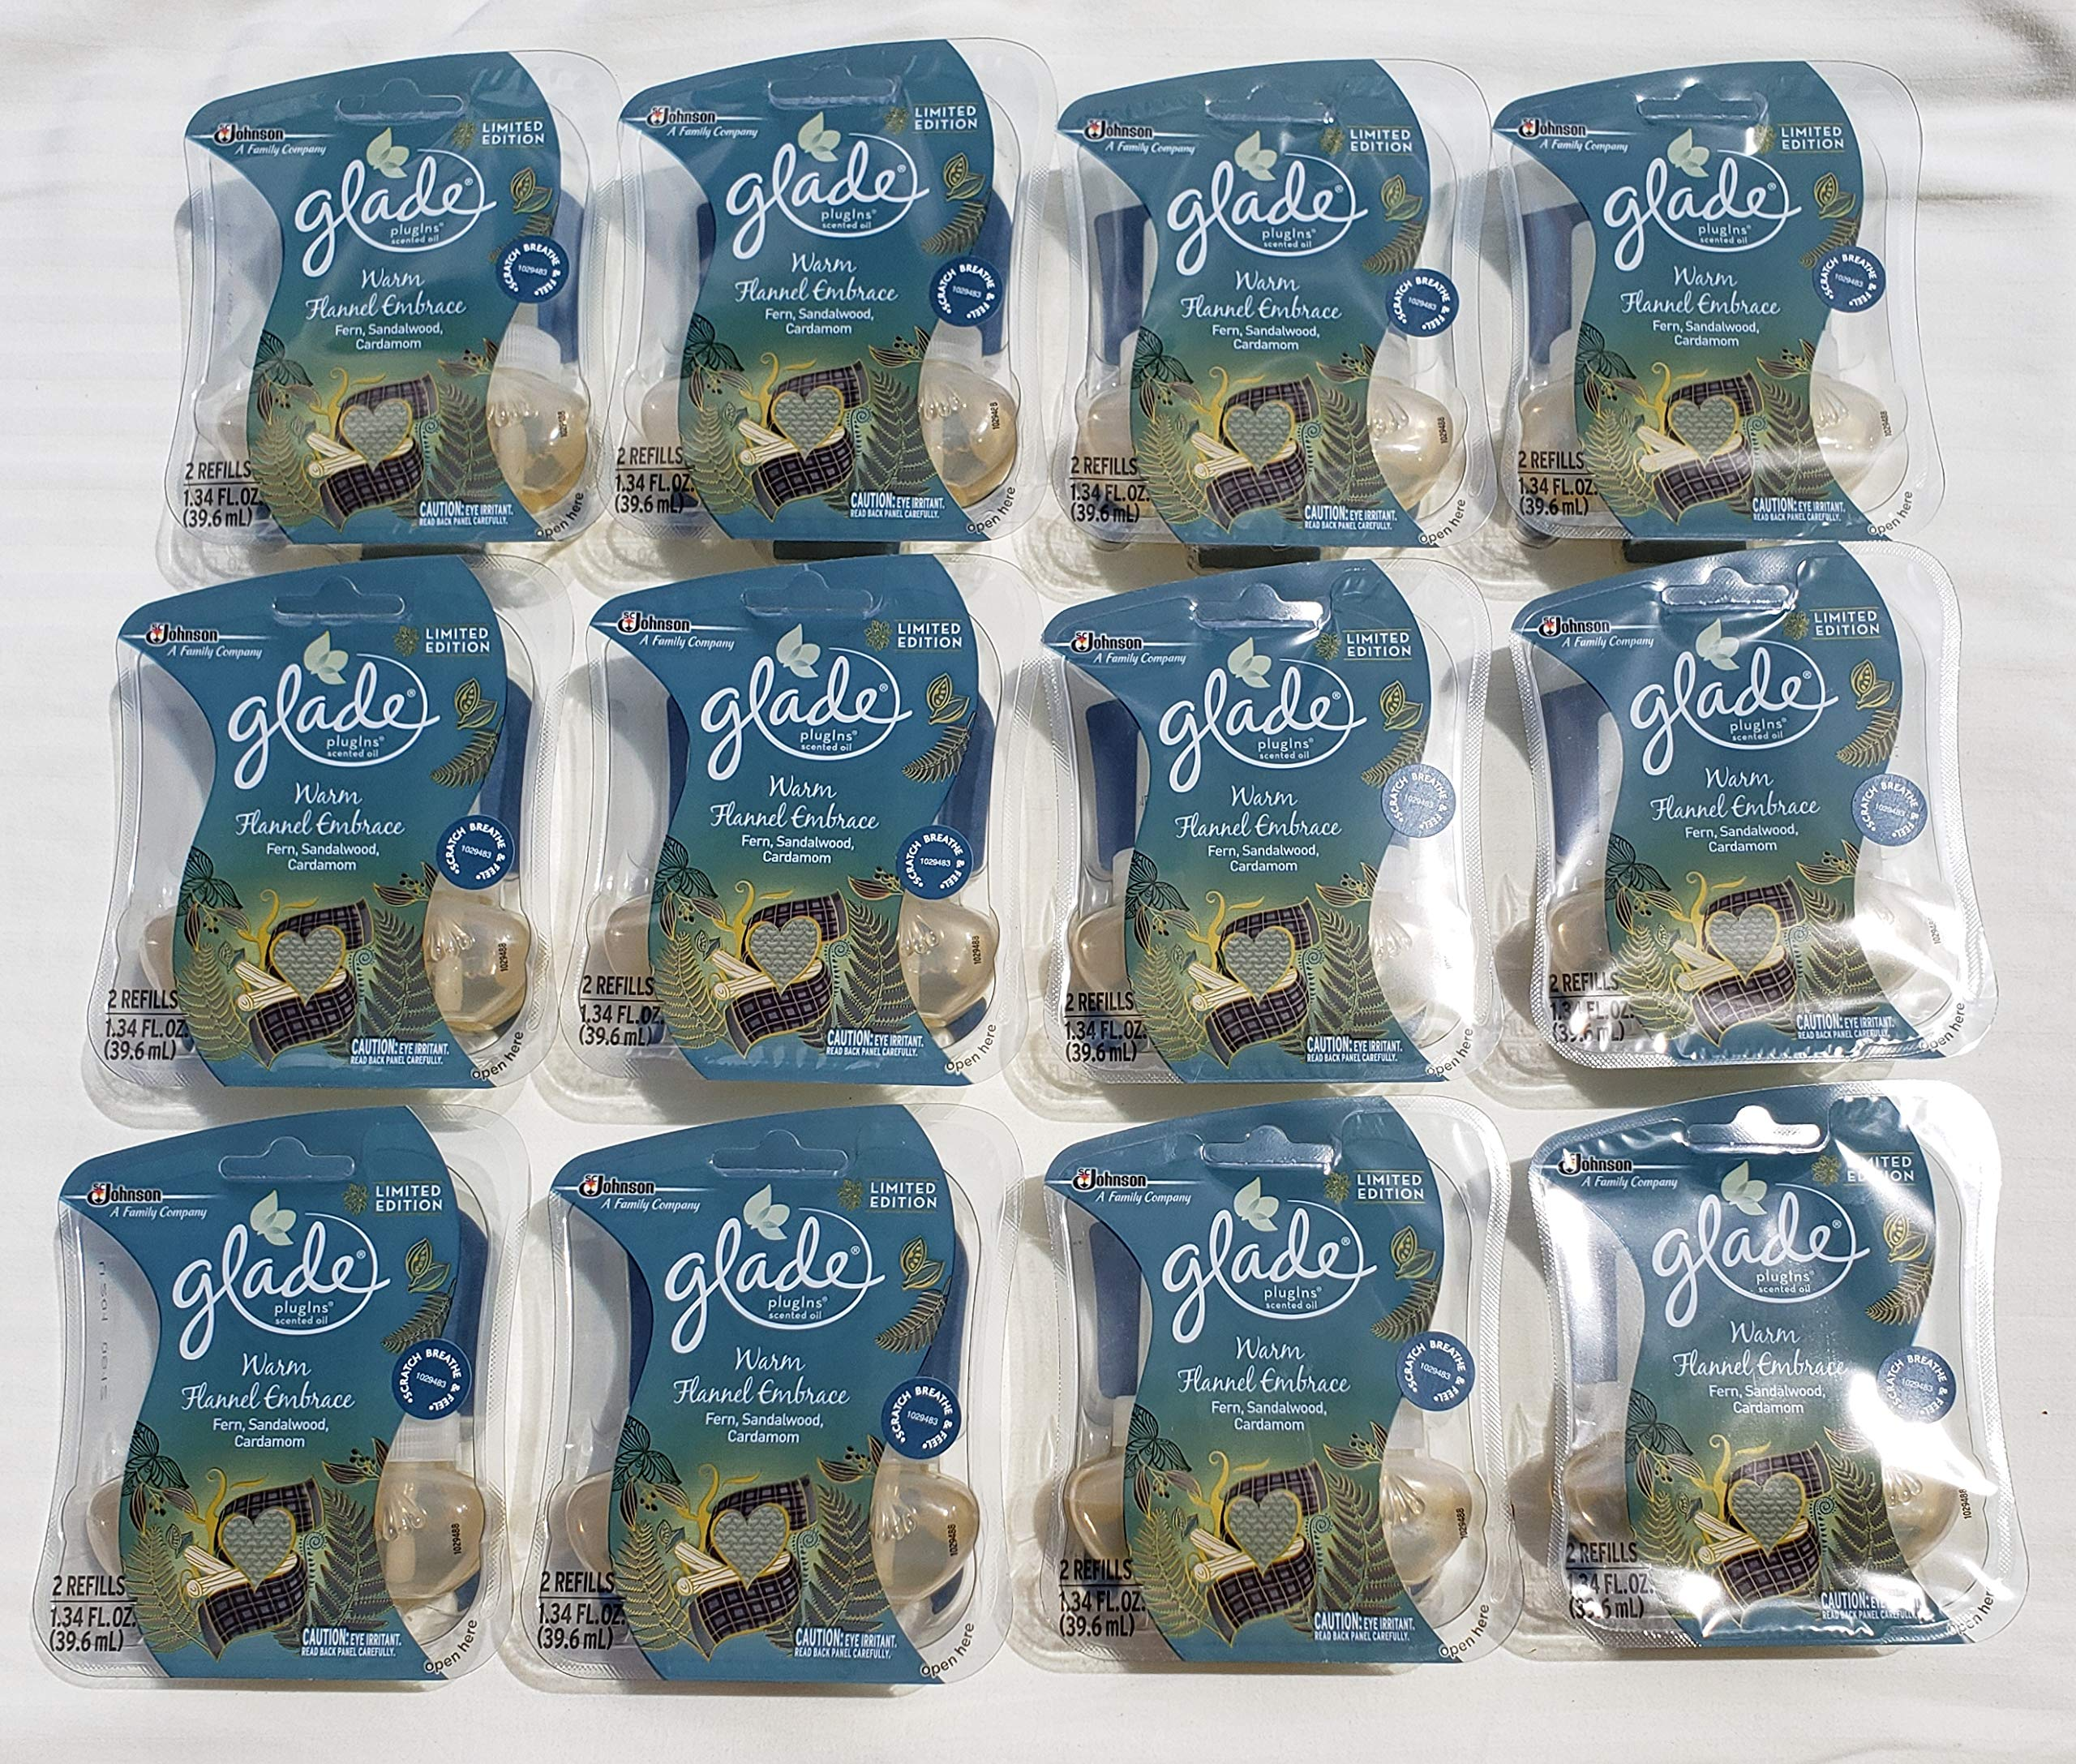 24 Glade PLUGINS Scented Oil Refills Warm Flannel Embrace Limited 12 Twin Packs by Glade